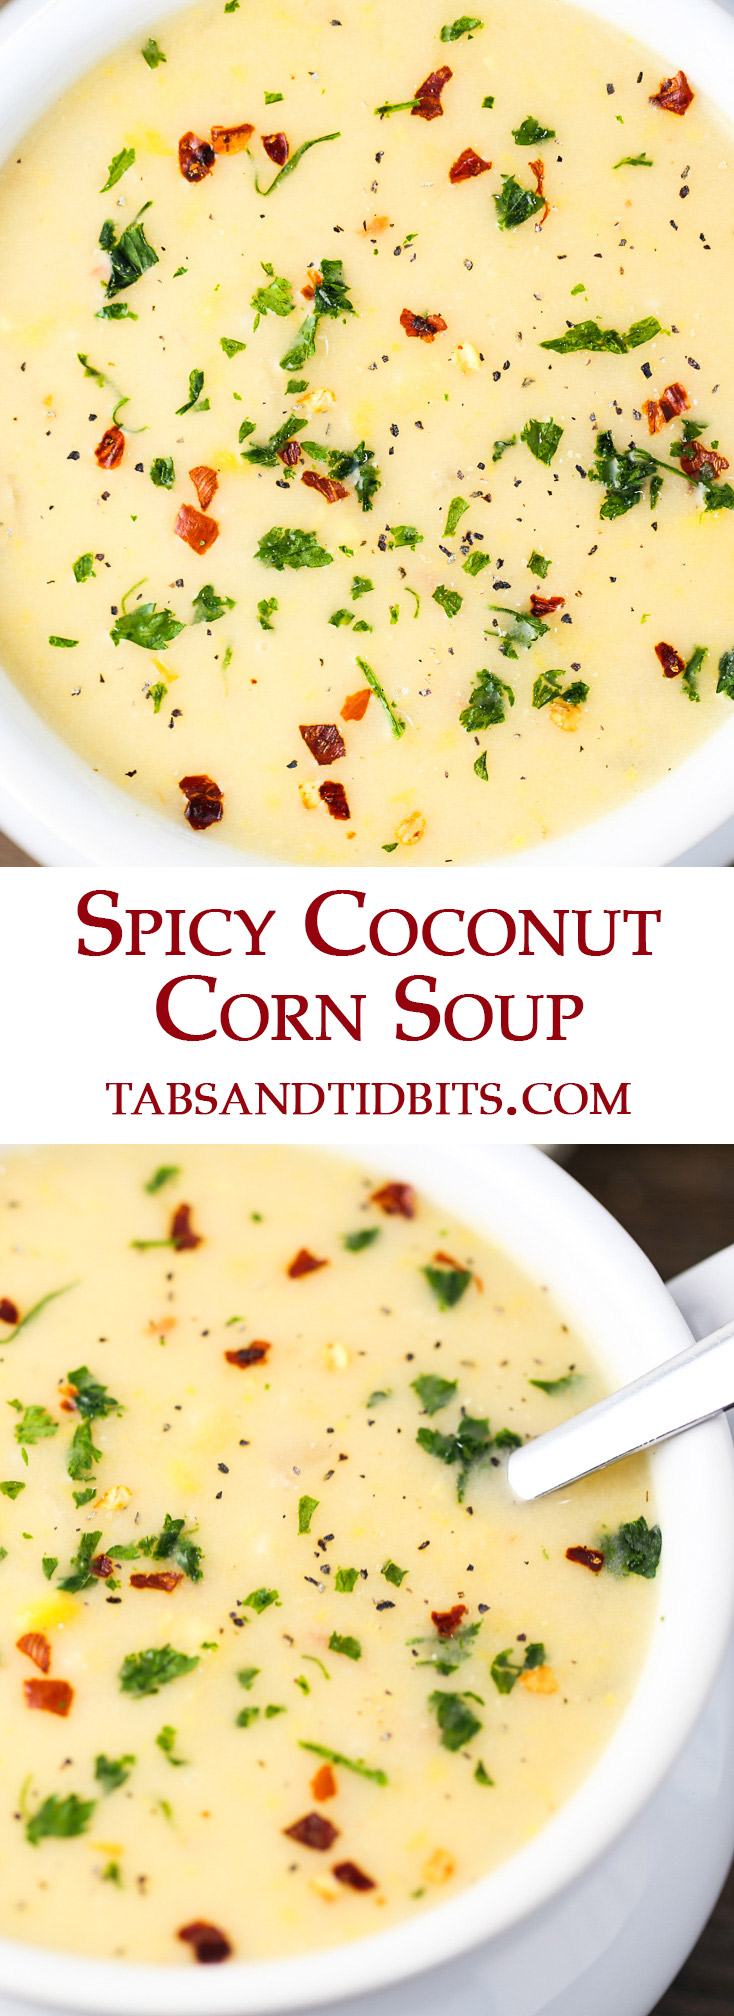 This Spicy Coconut Corn soup is simple and quick to make. Naturallysweet corn and coconut milk with the spiciness of red pepper flakes and balanced out by potatoes.